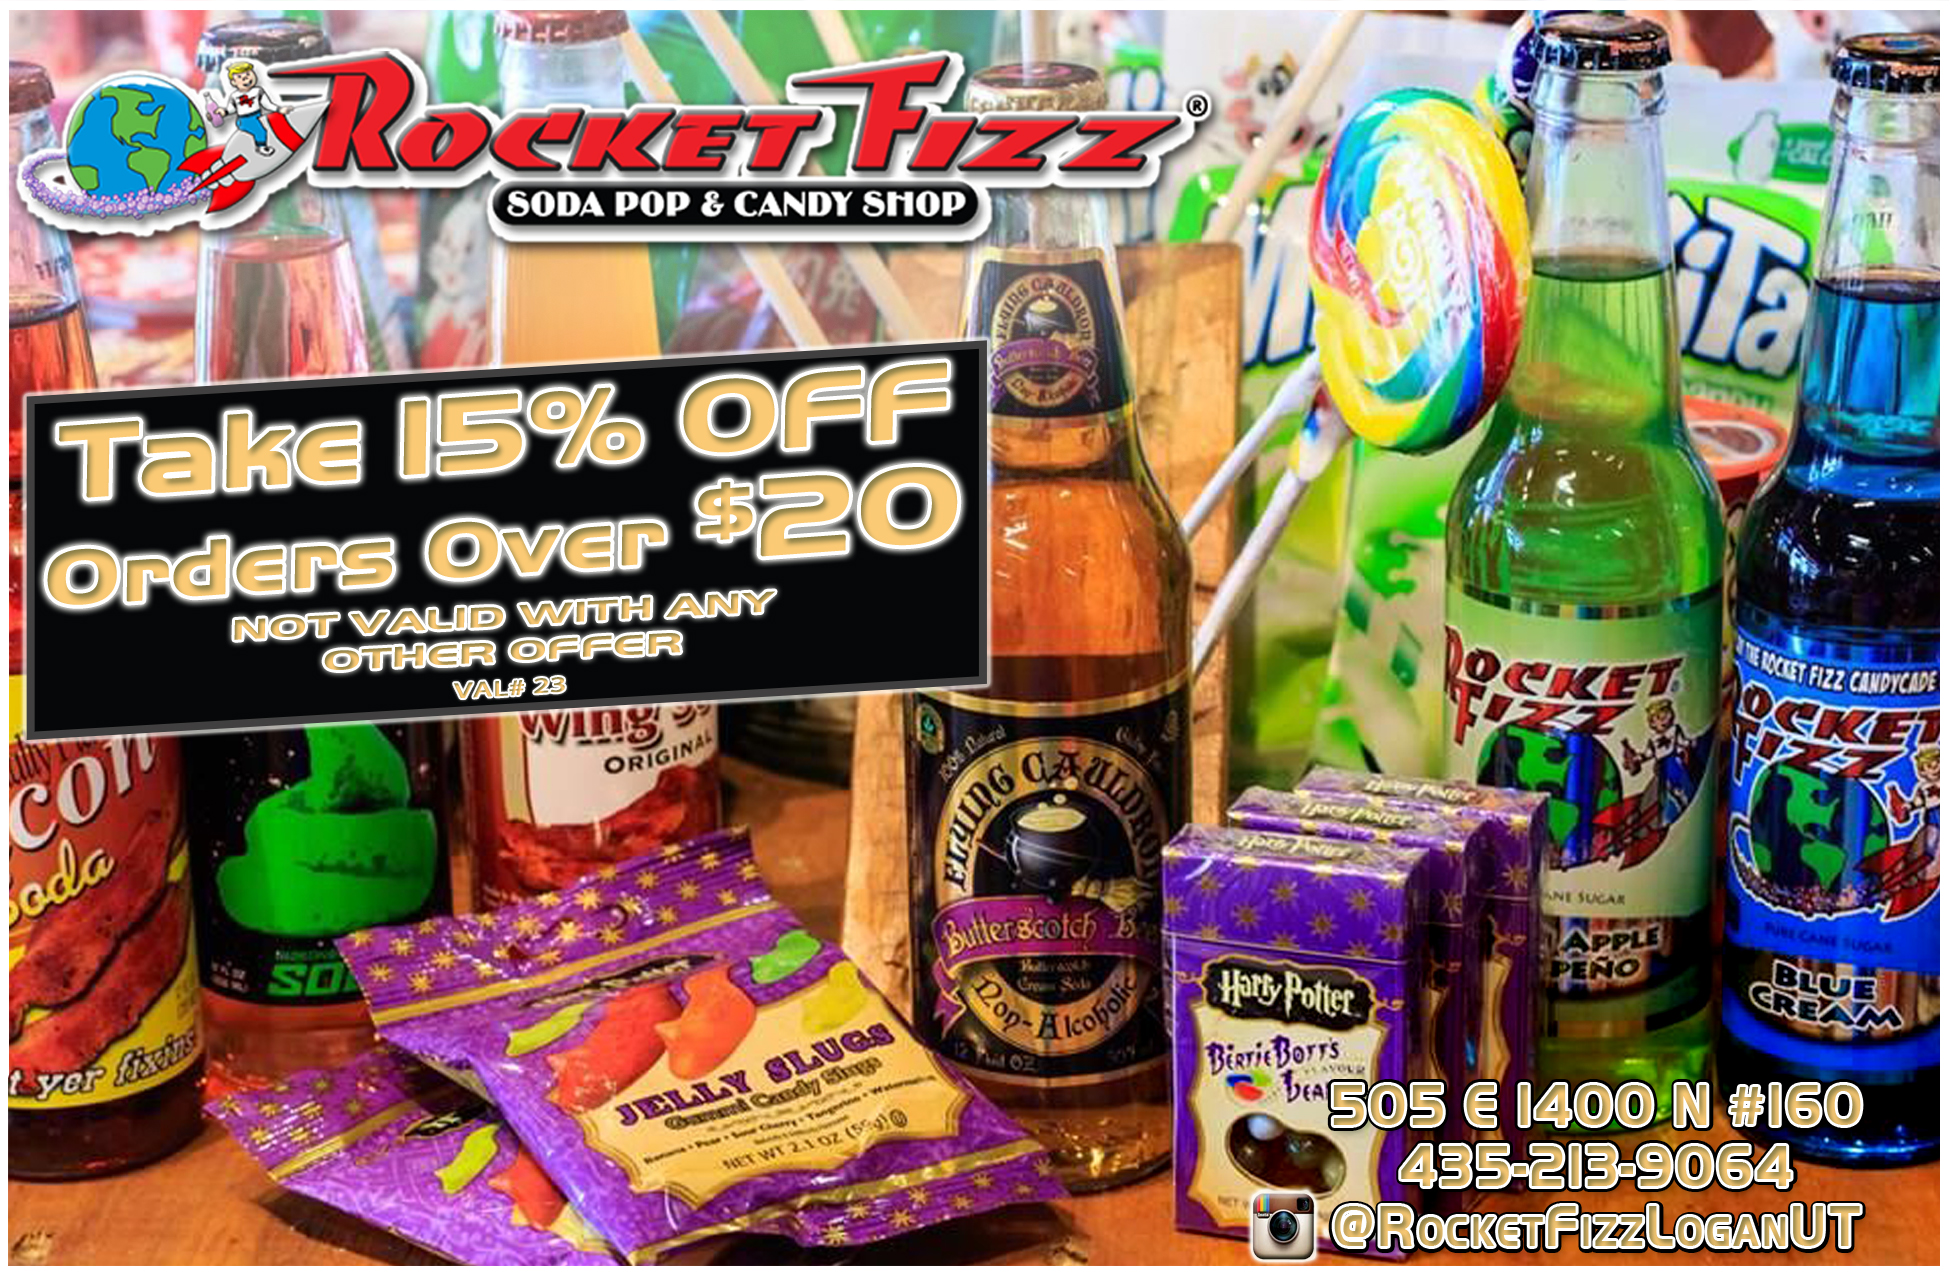 Rocket Fizz Soda Pop & Candy Shop Logan Utah